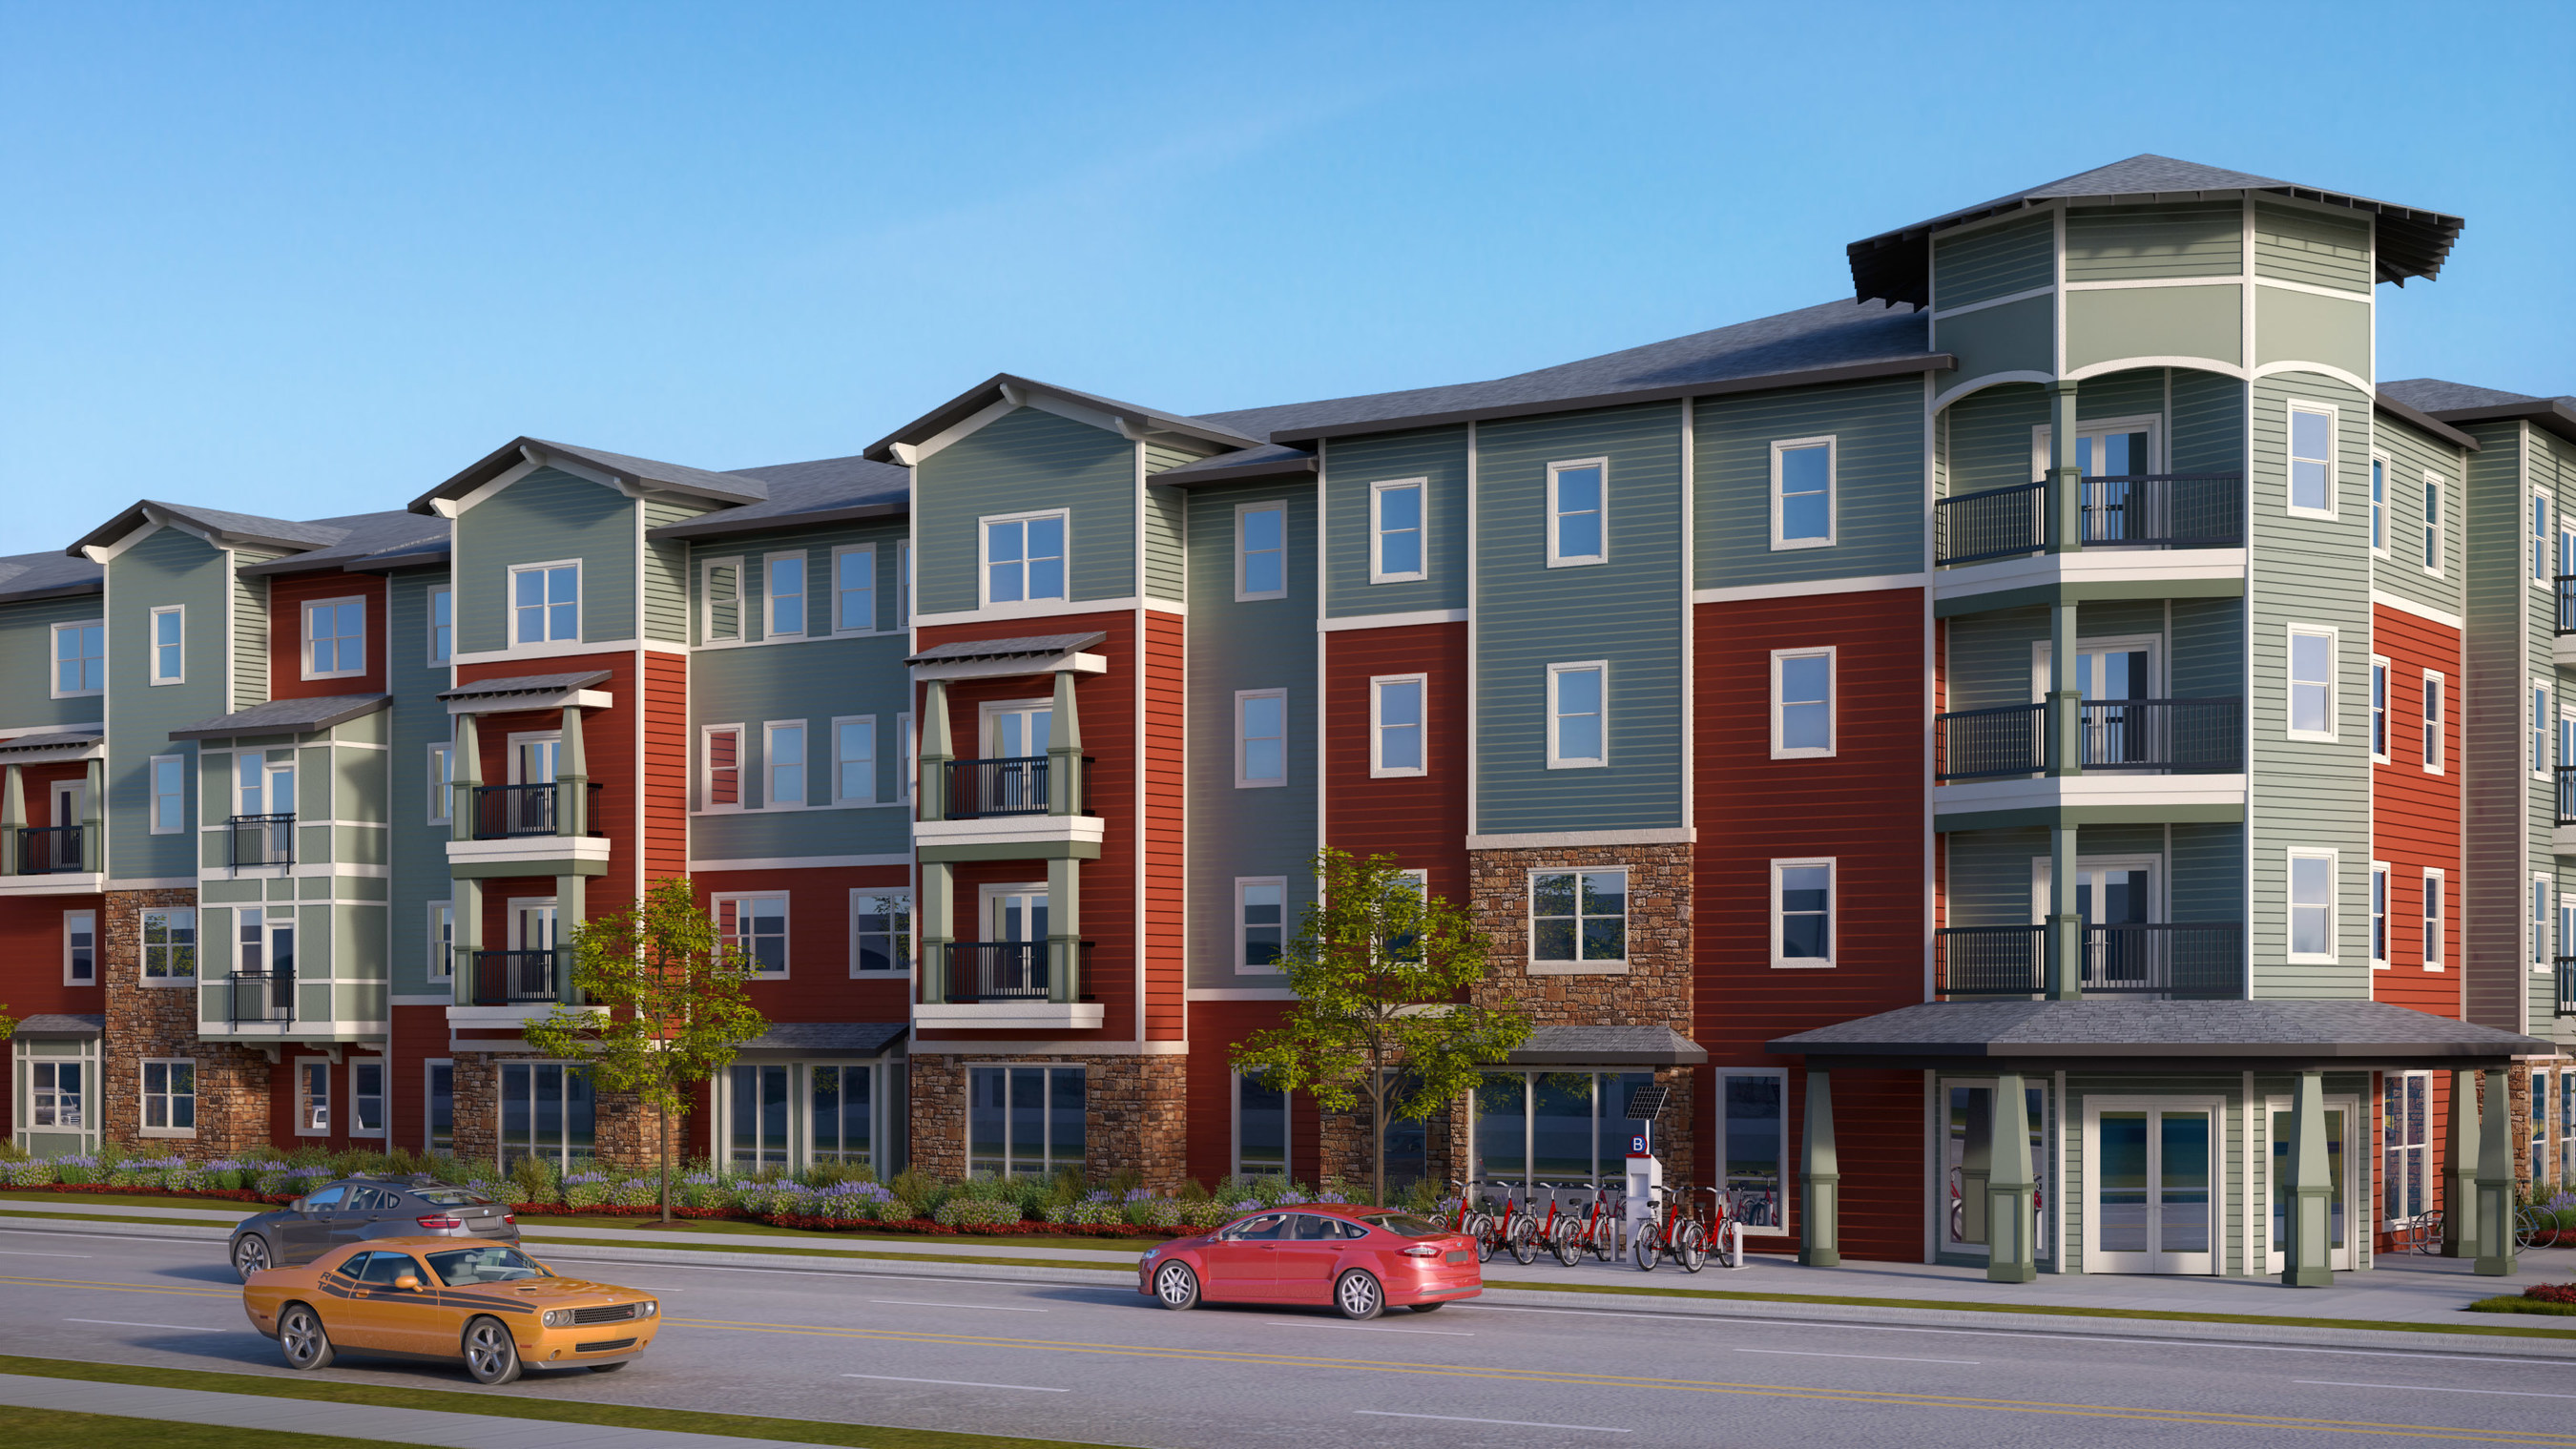 Fountain Residential Partners Developing Third Student Housing Project at the University of Houston in New Joint Venture with Virtus Real Estate Capital